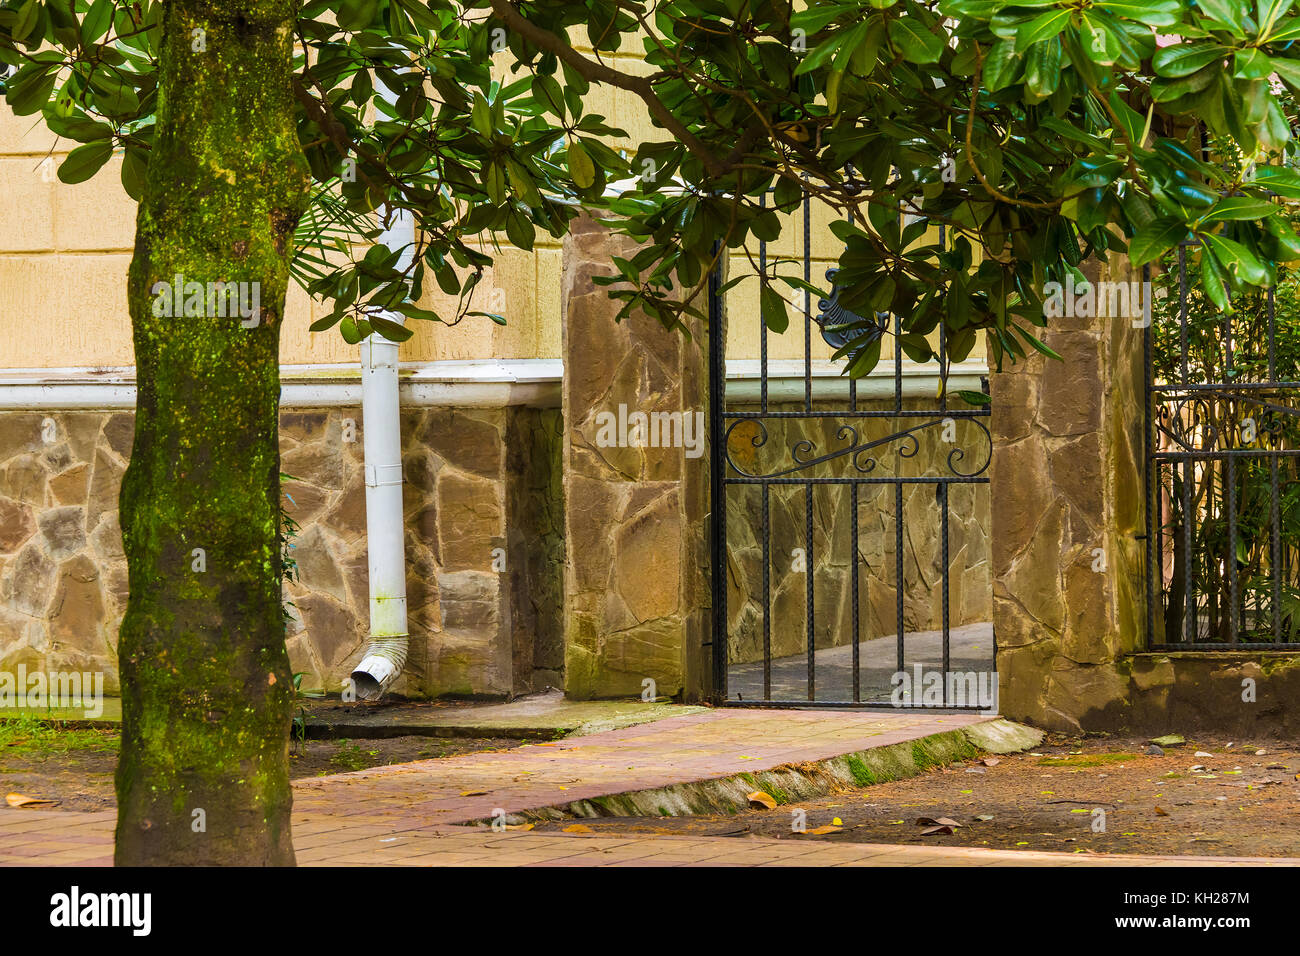 Magnolia Building Stock Photos & Magnolia Building Stock Images - Alamy